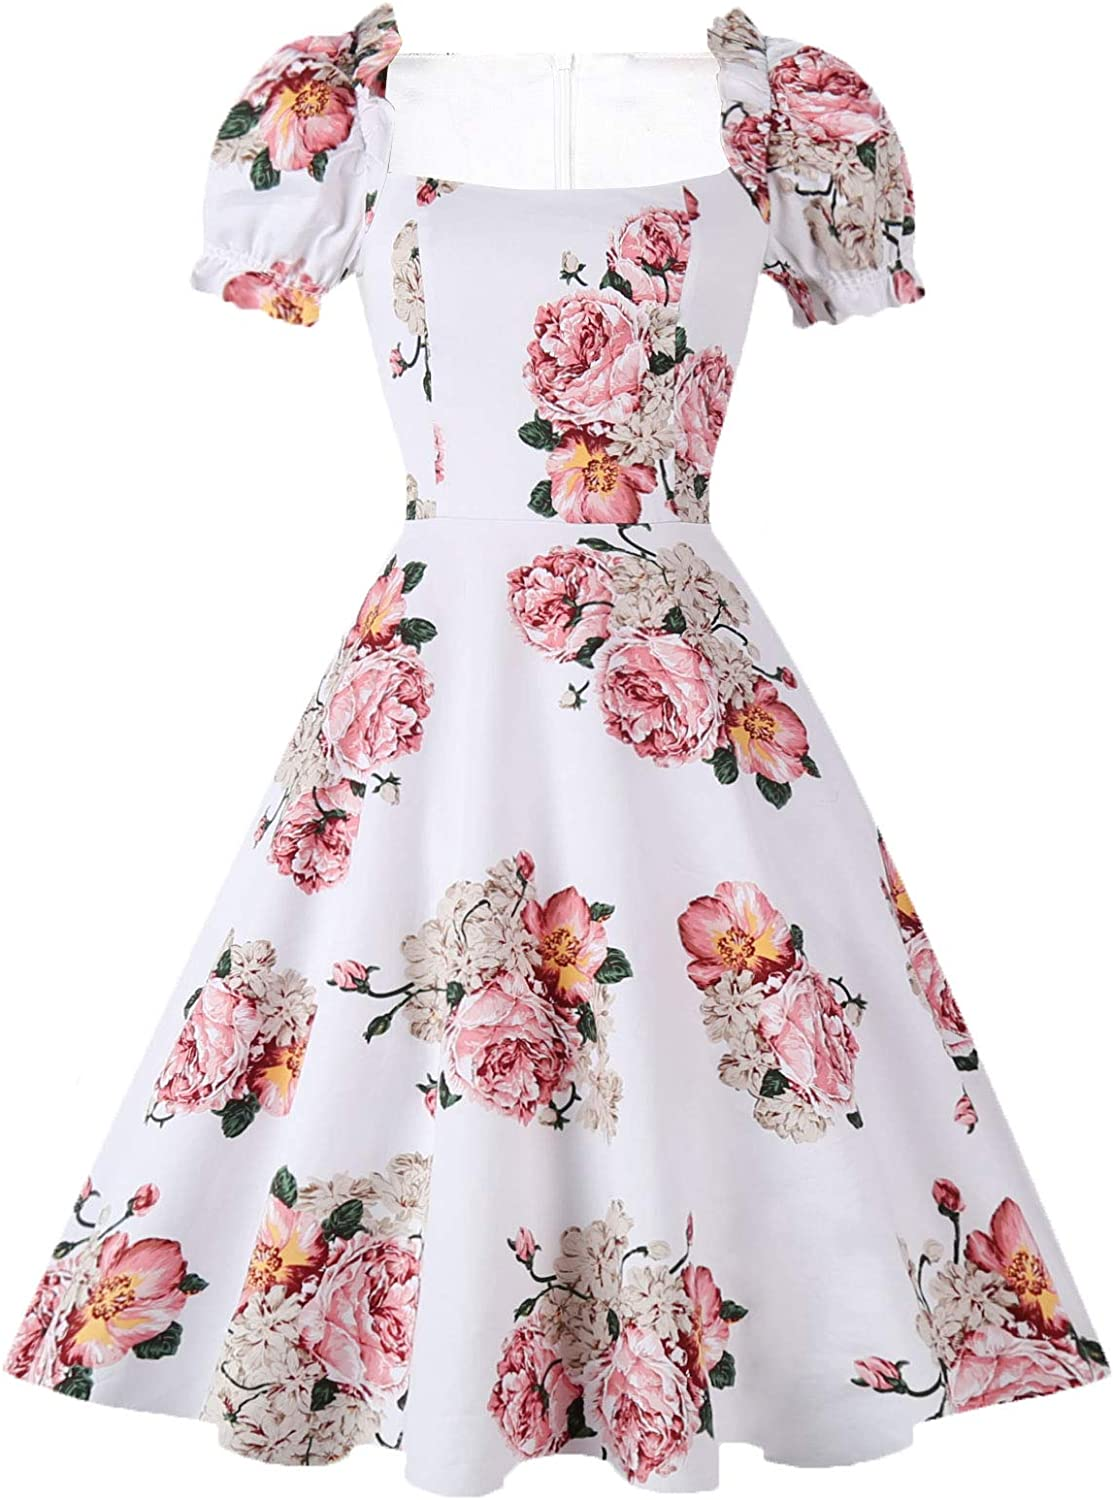 Hanpceirs Women's Puff Short Sleeve 1950s Party Dresses Square Neck Aline Dress with Pockets